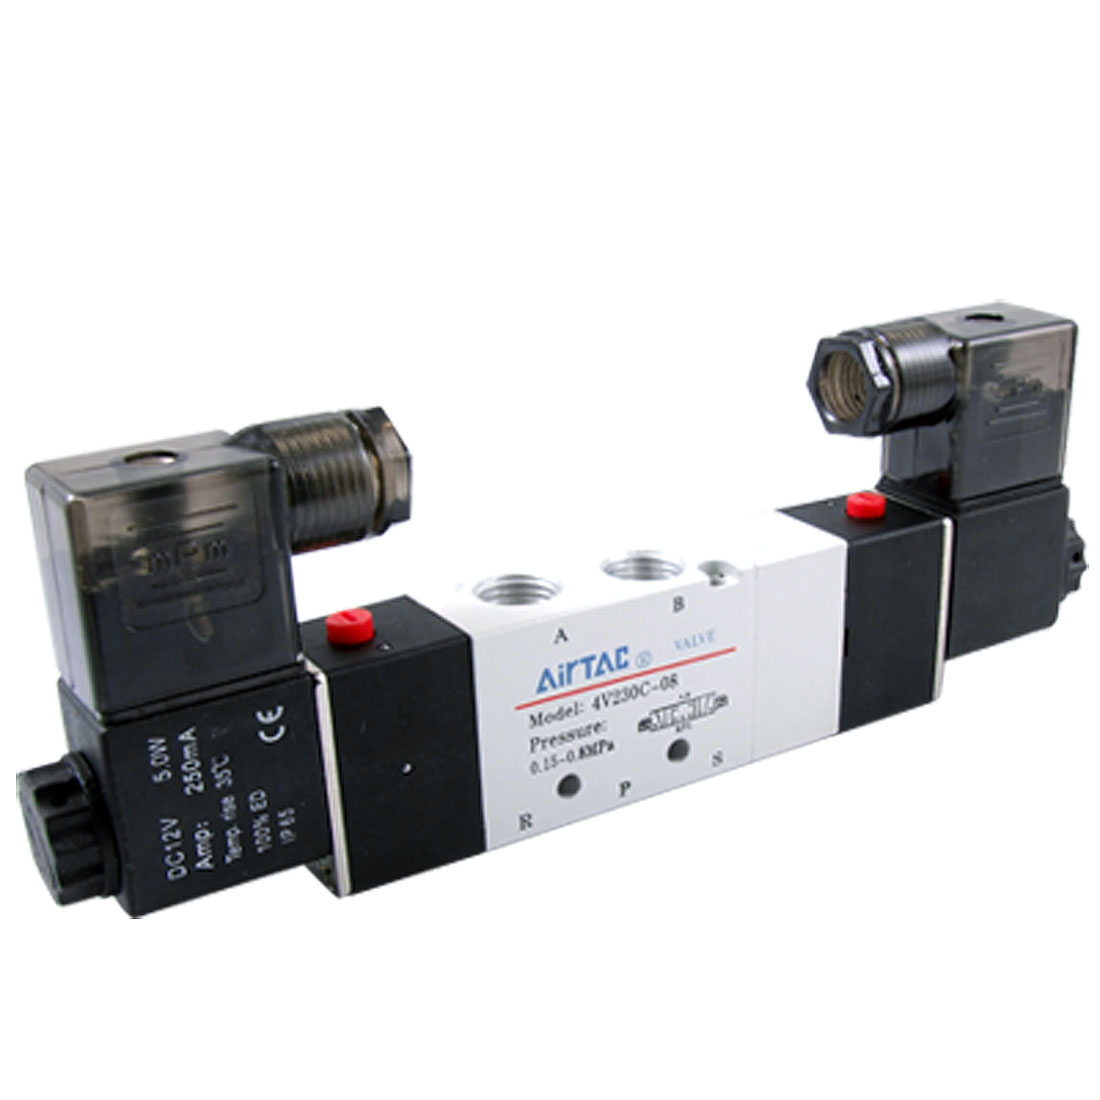 4V230C-08 3 Position 5 Way Double Heads Pneumatic Solenoid Valve